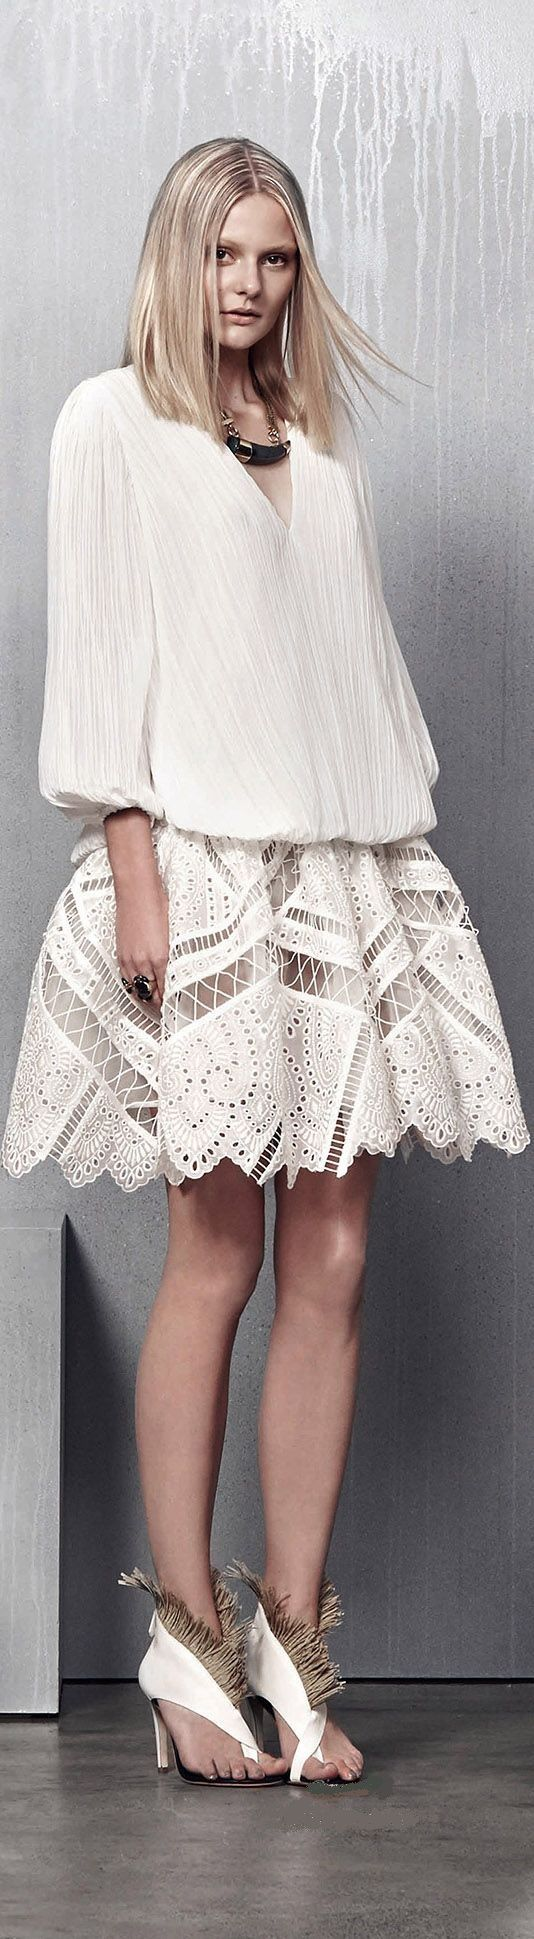 ~Zimmermann Resort 2015 | The House of Beccaria#